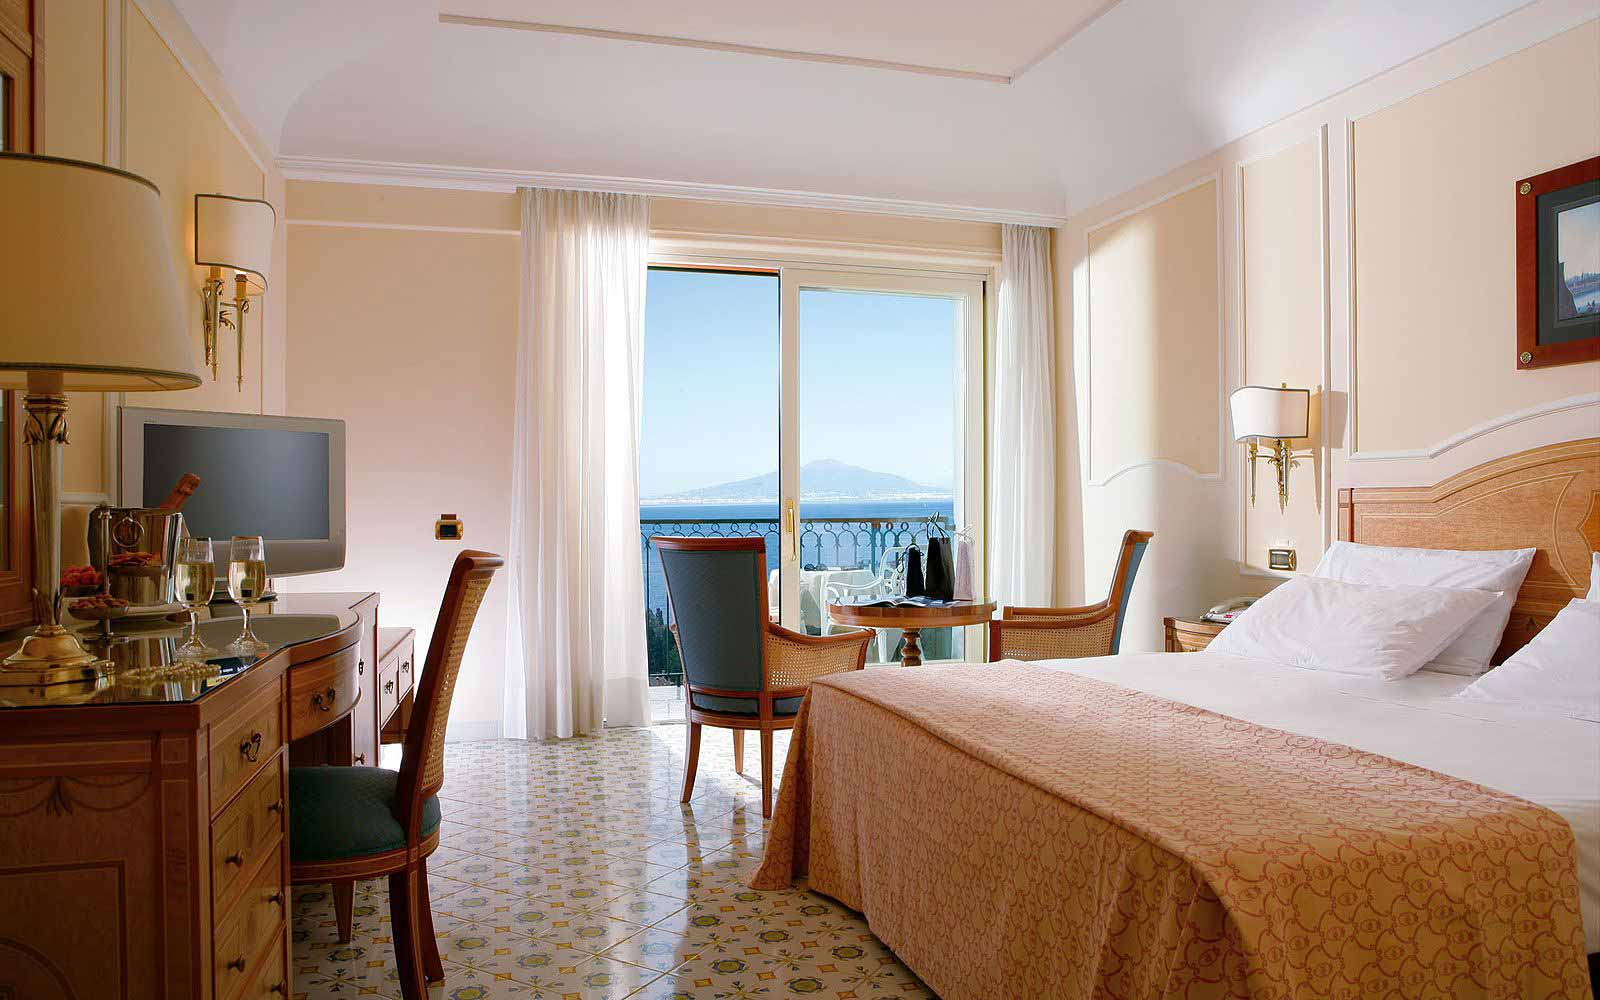 Premier Room with balcony and seaview at the Grand Hotel Capodimonte